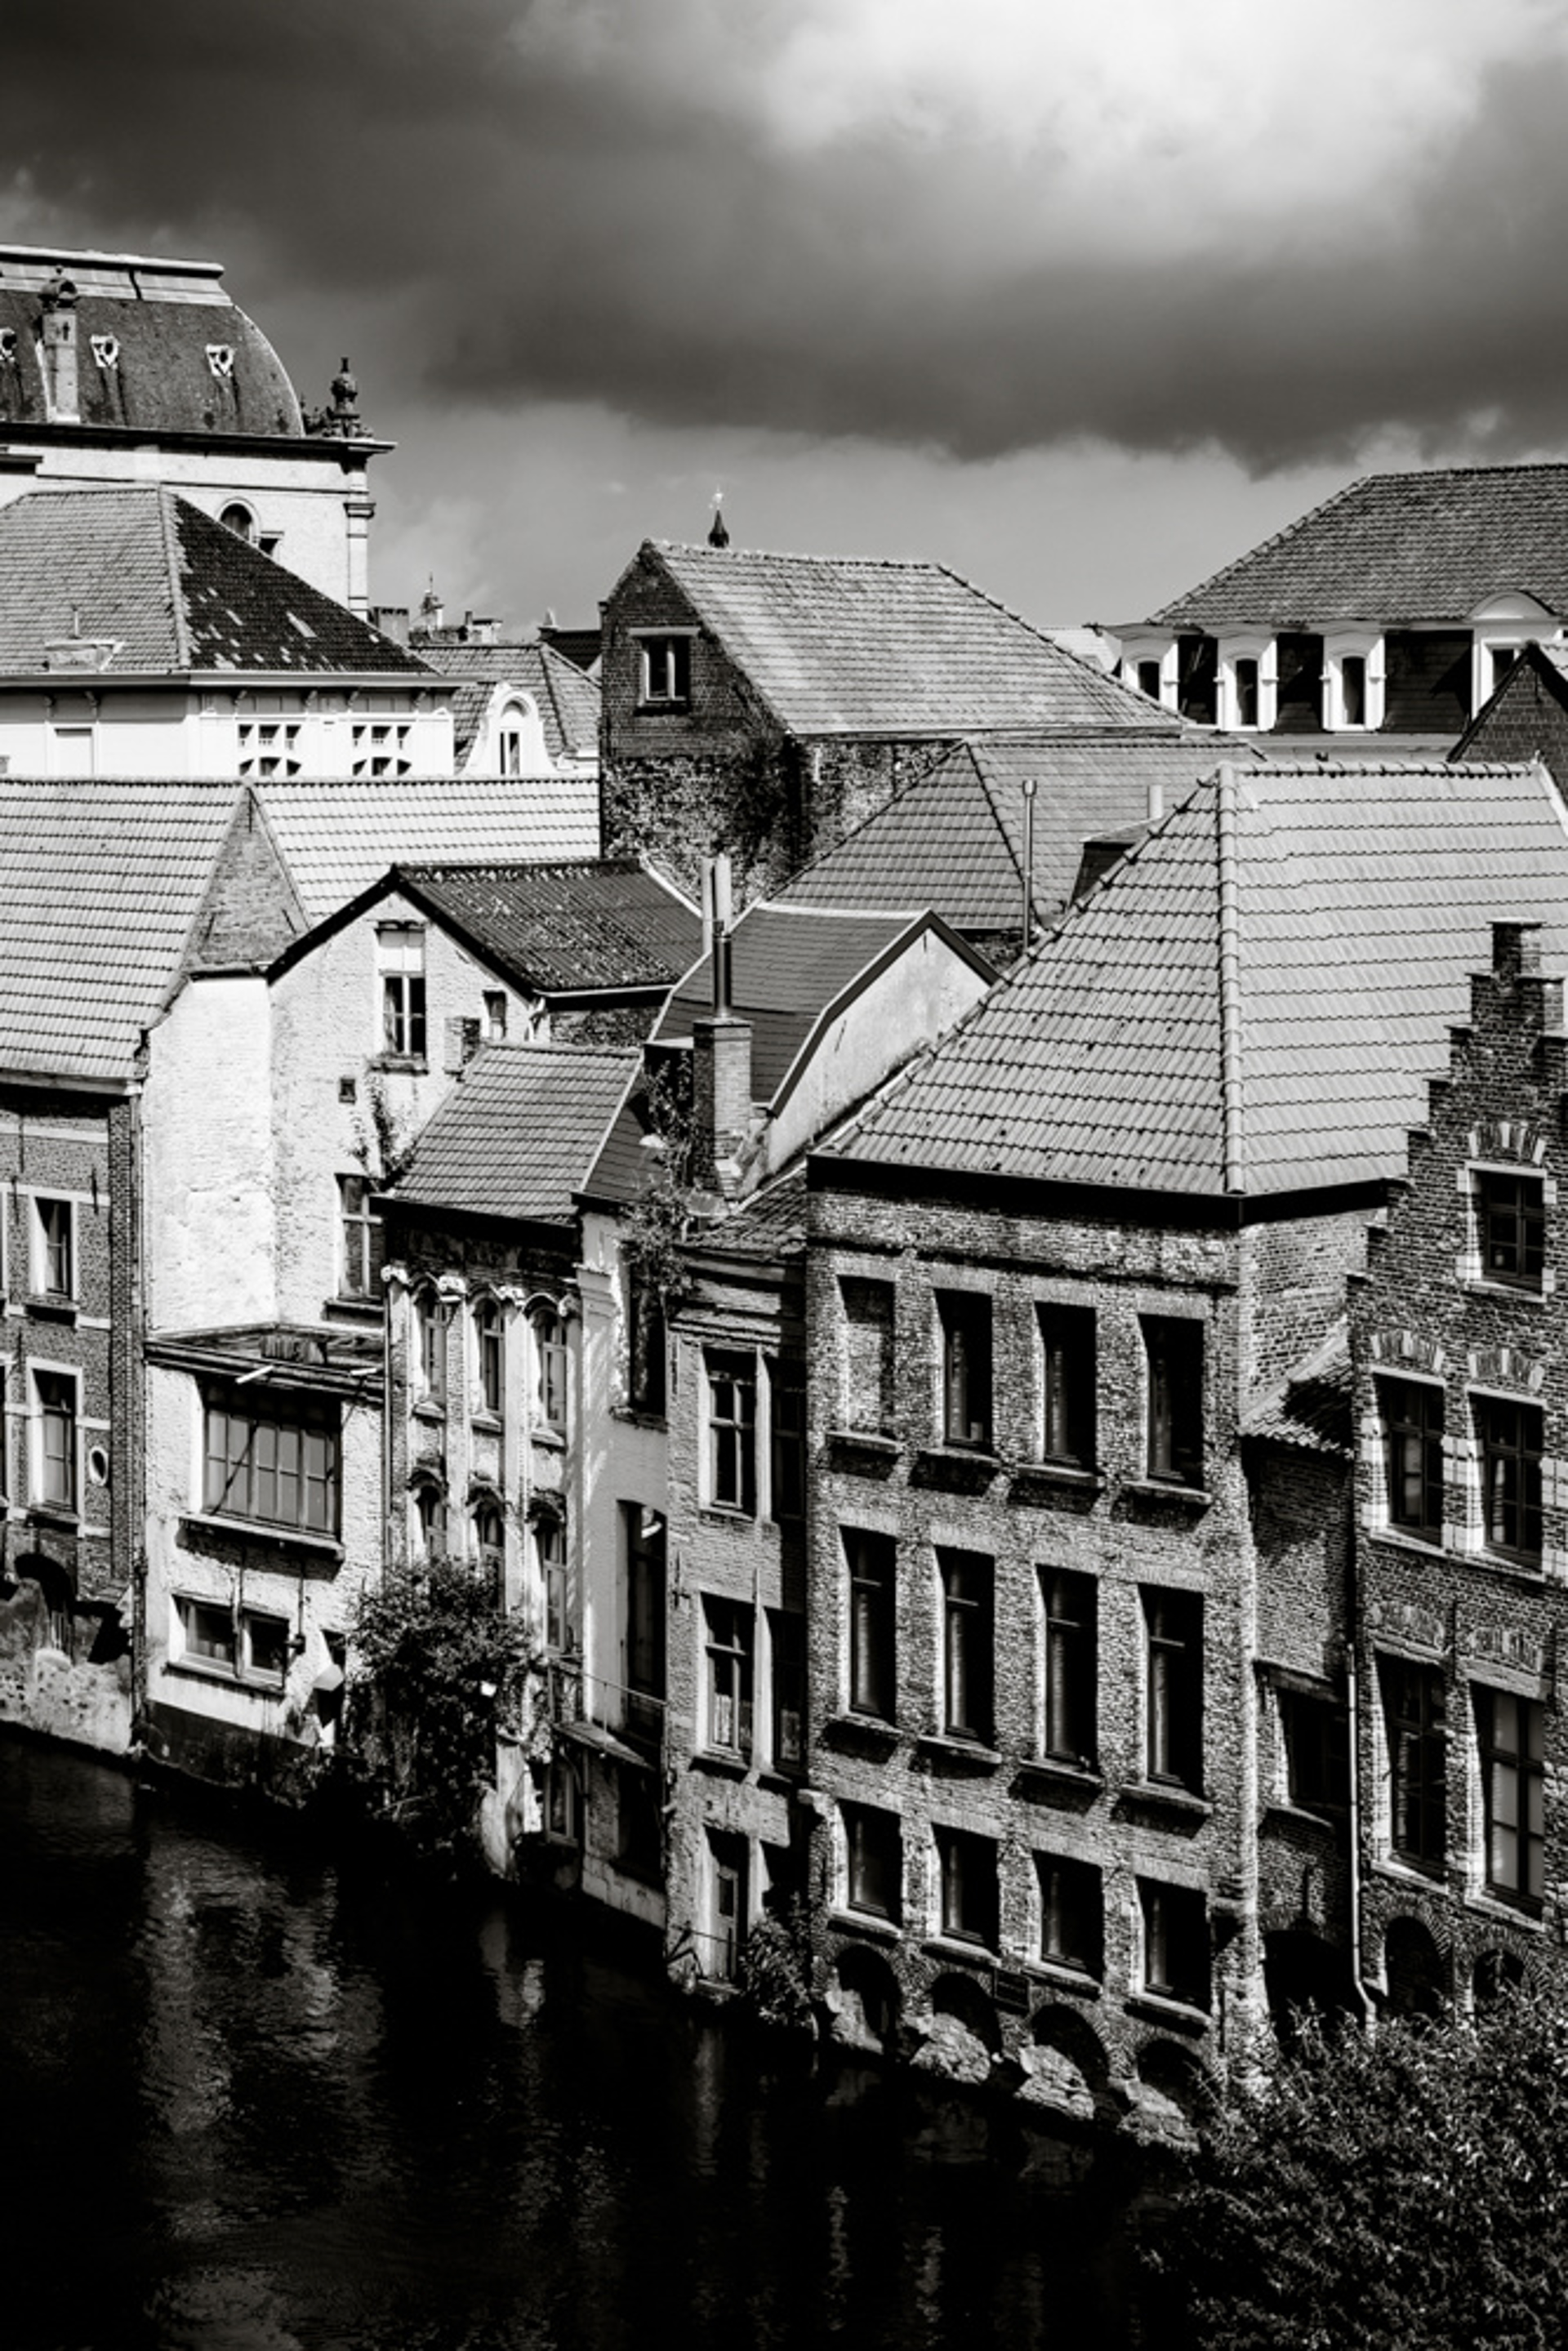 ghent by Alex Nyerges